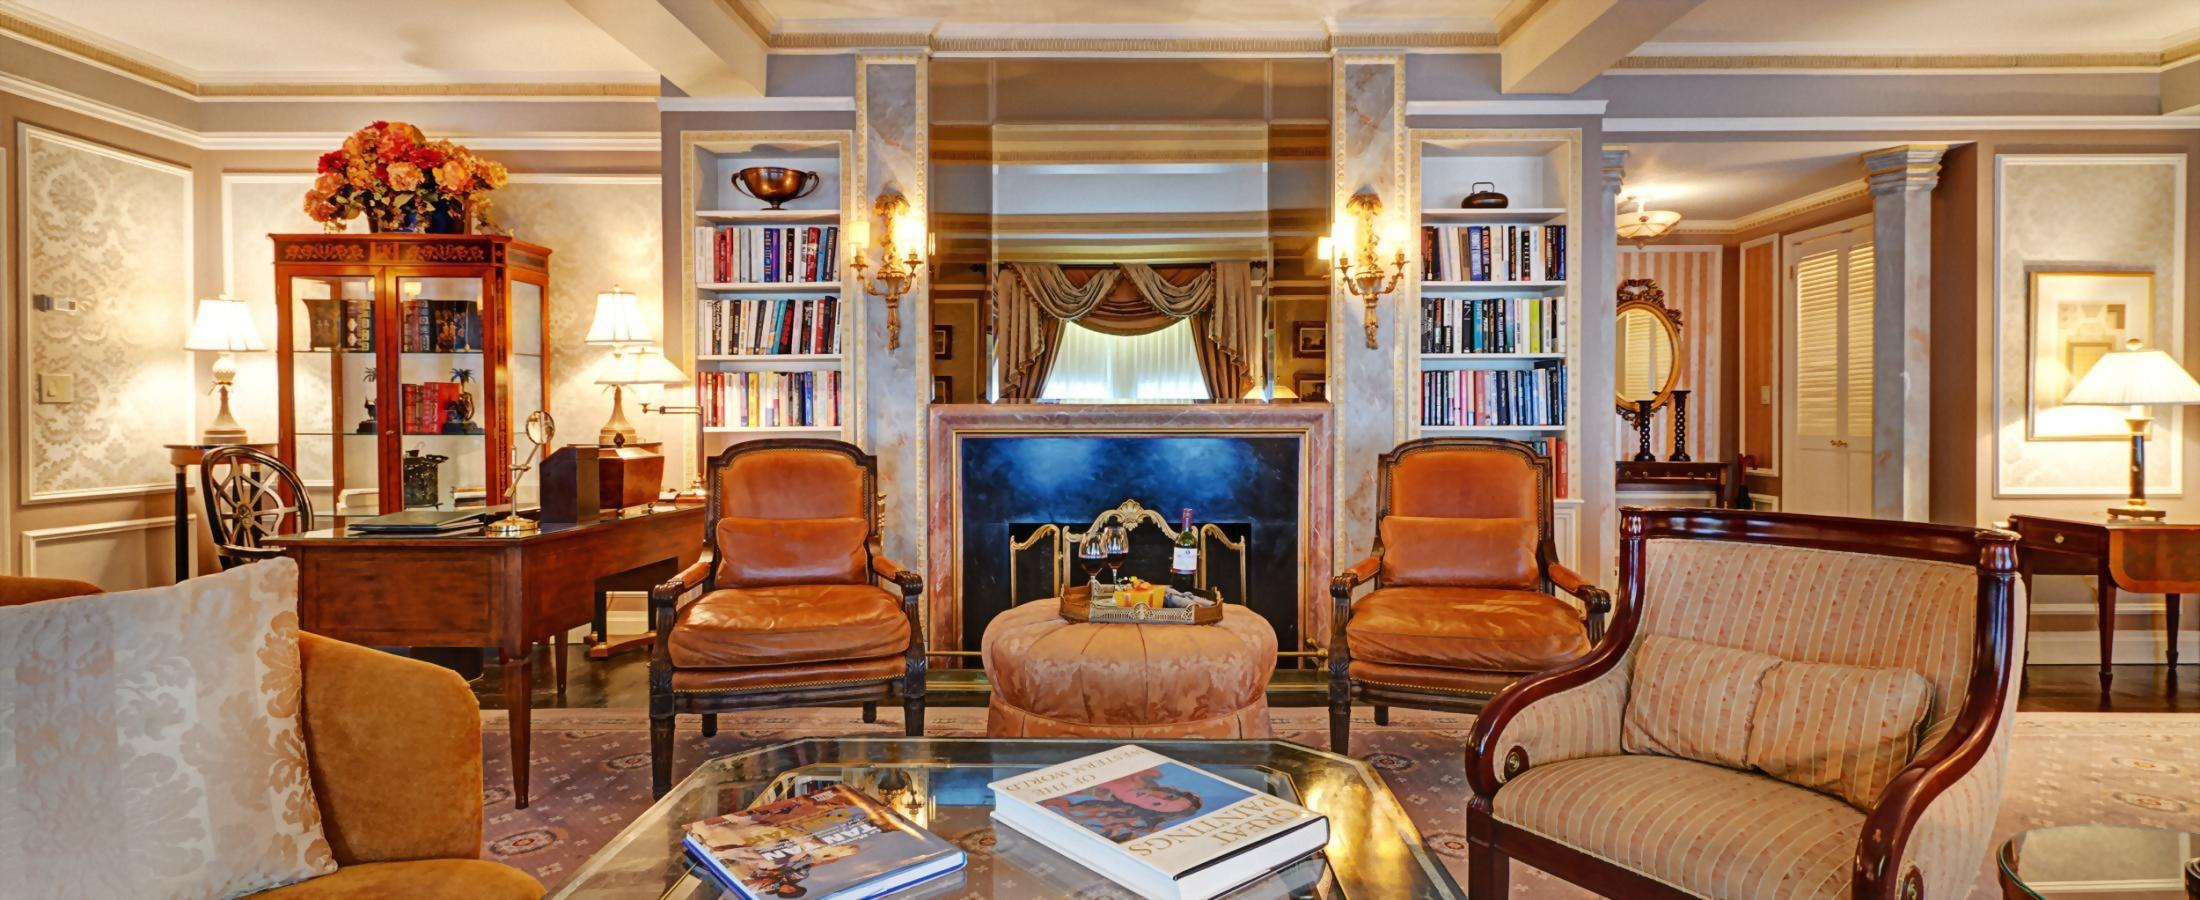 The living room of the Presidential Suite honoring Vaclav Havel boasts a faux fireplace, a baby grand piano, and large dining table.